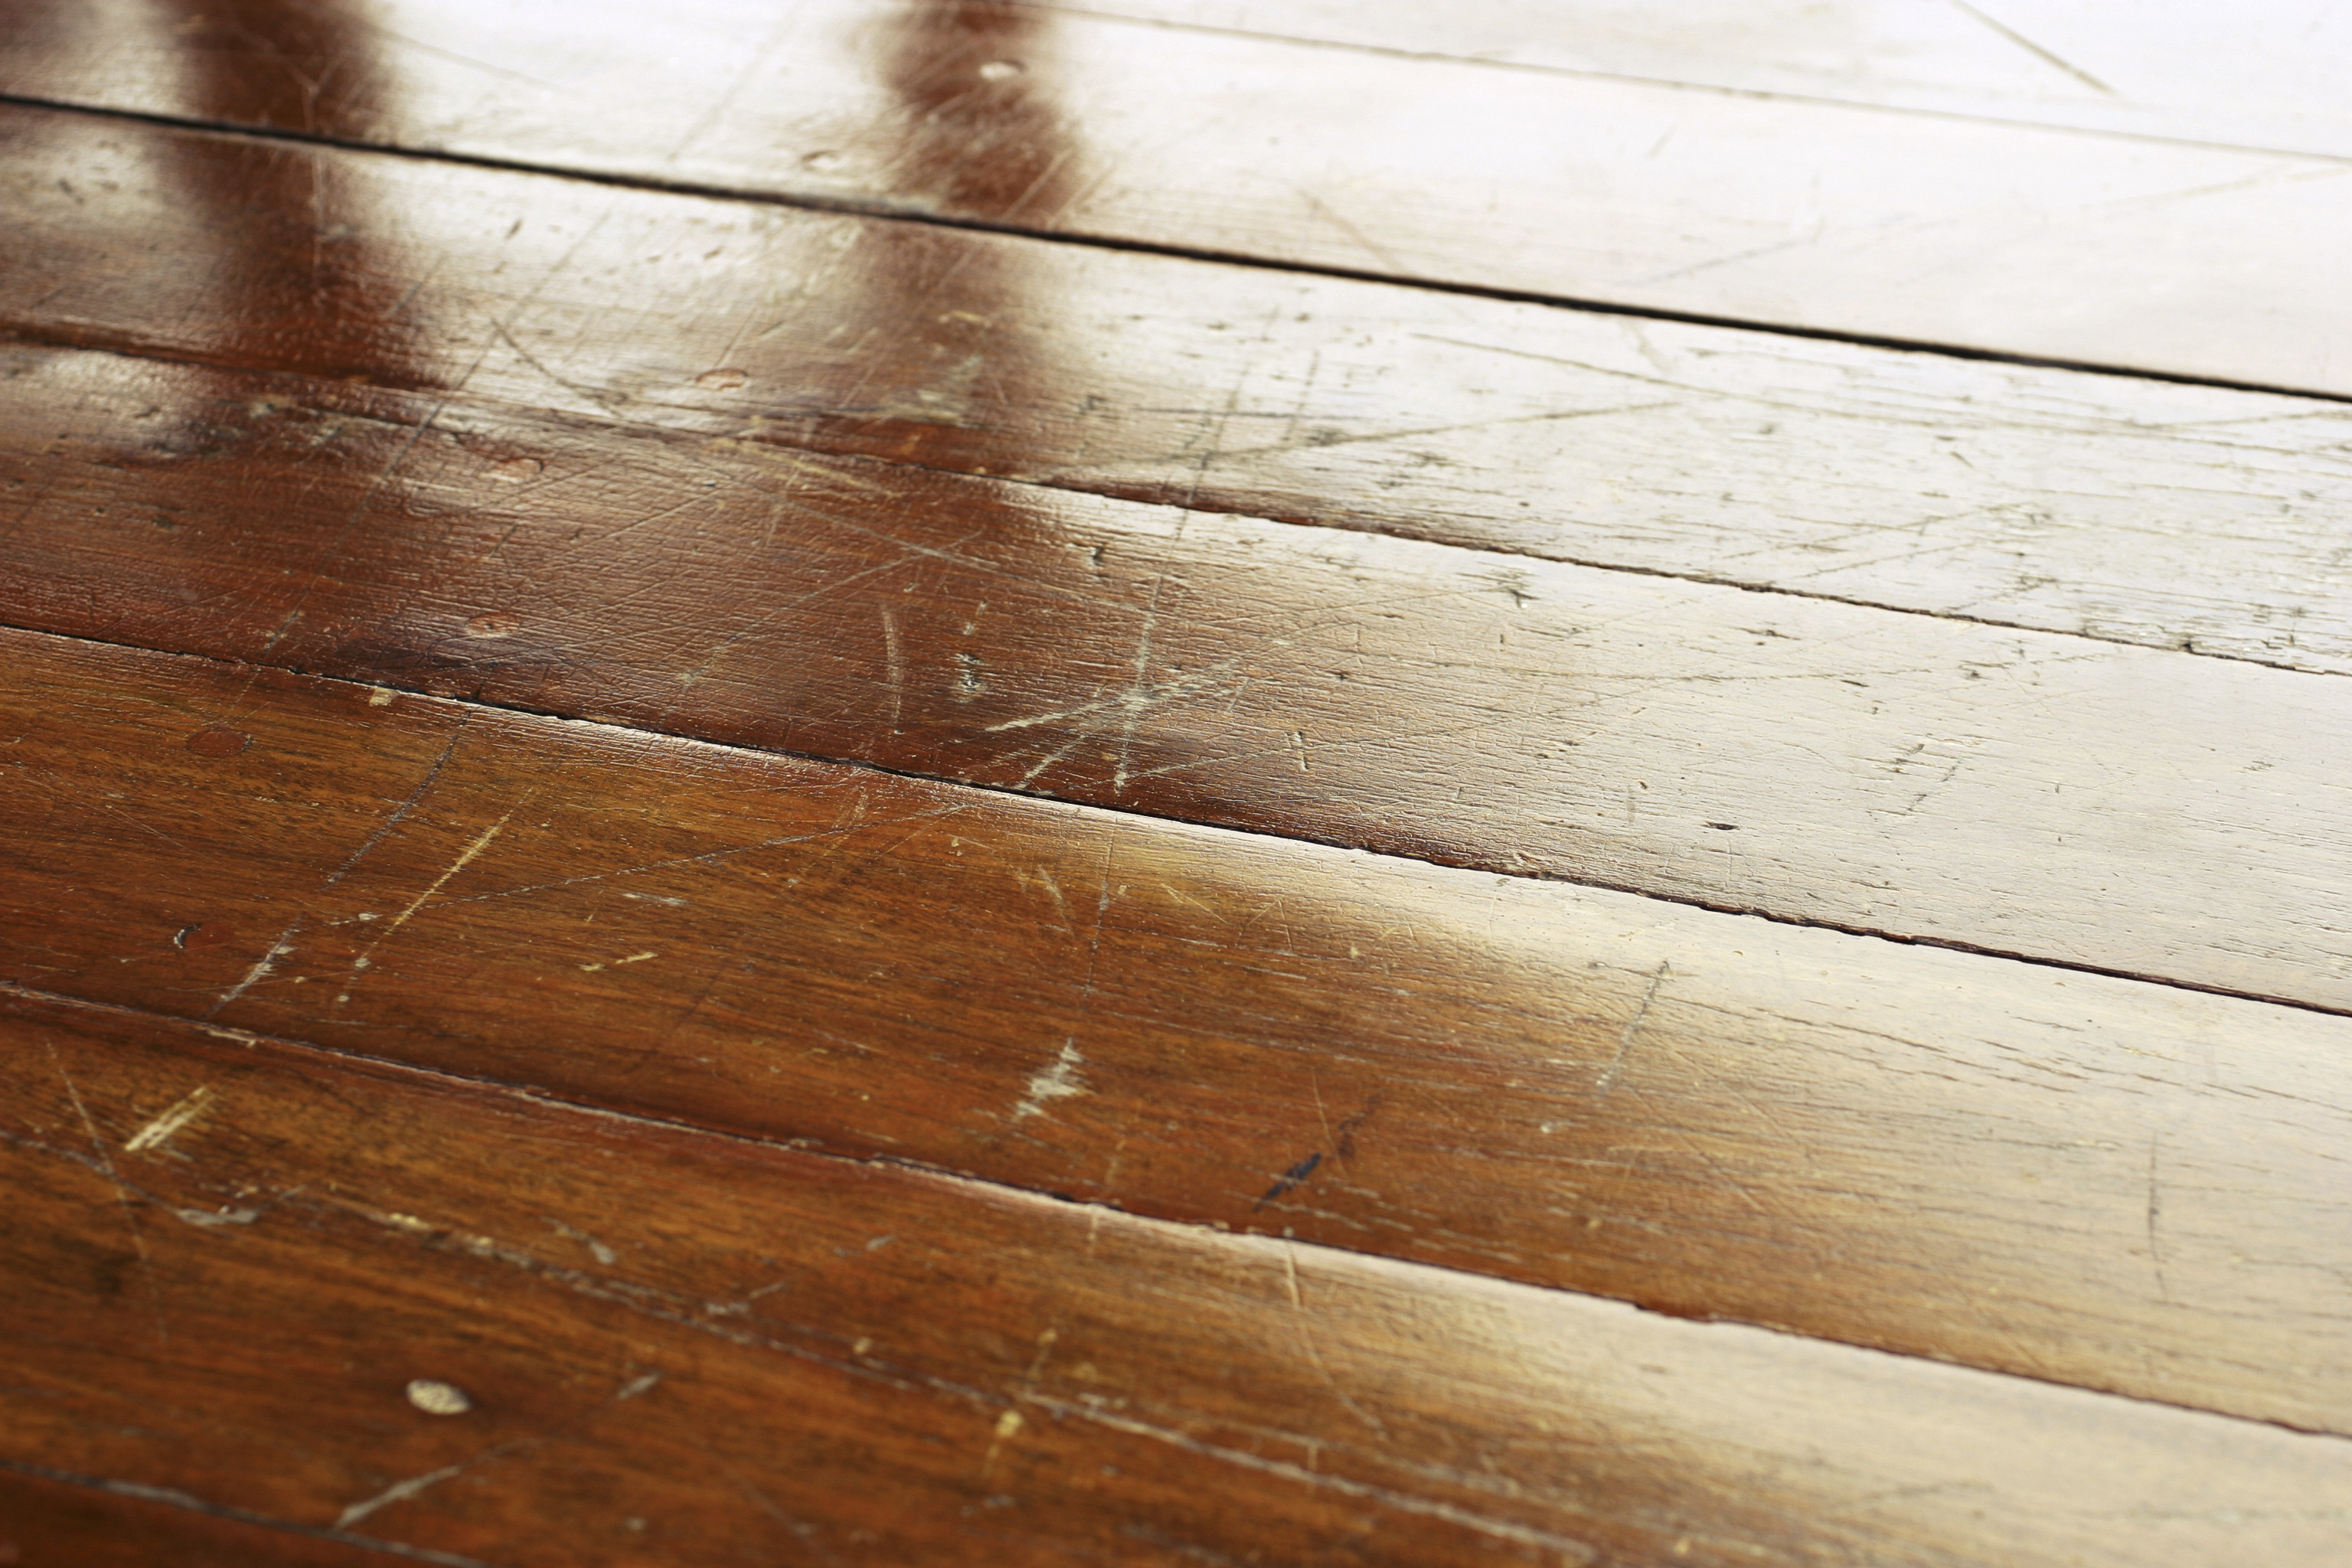 hardwood floor cleaning chicago of how to remove nail polish from hardwood floors floor throughout how to remove nail polish from hardwood floors hardwood floor cleaning how to mop hardwood floors